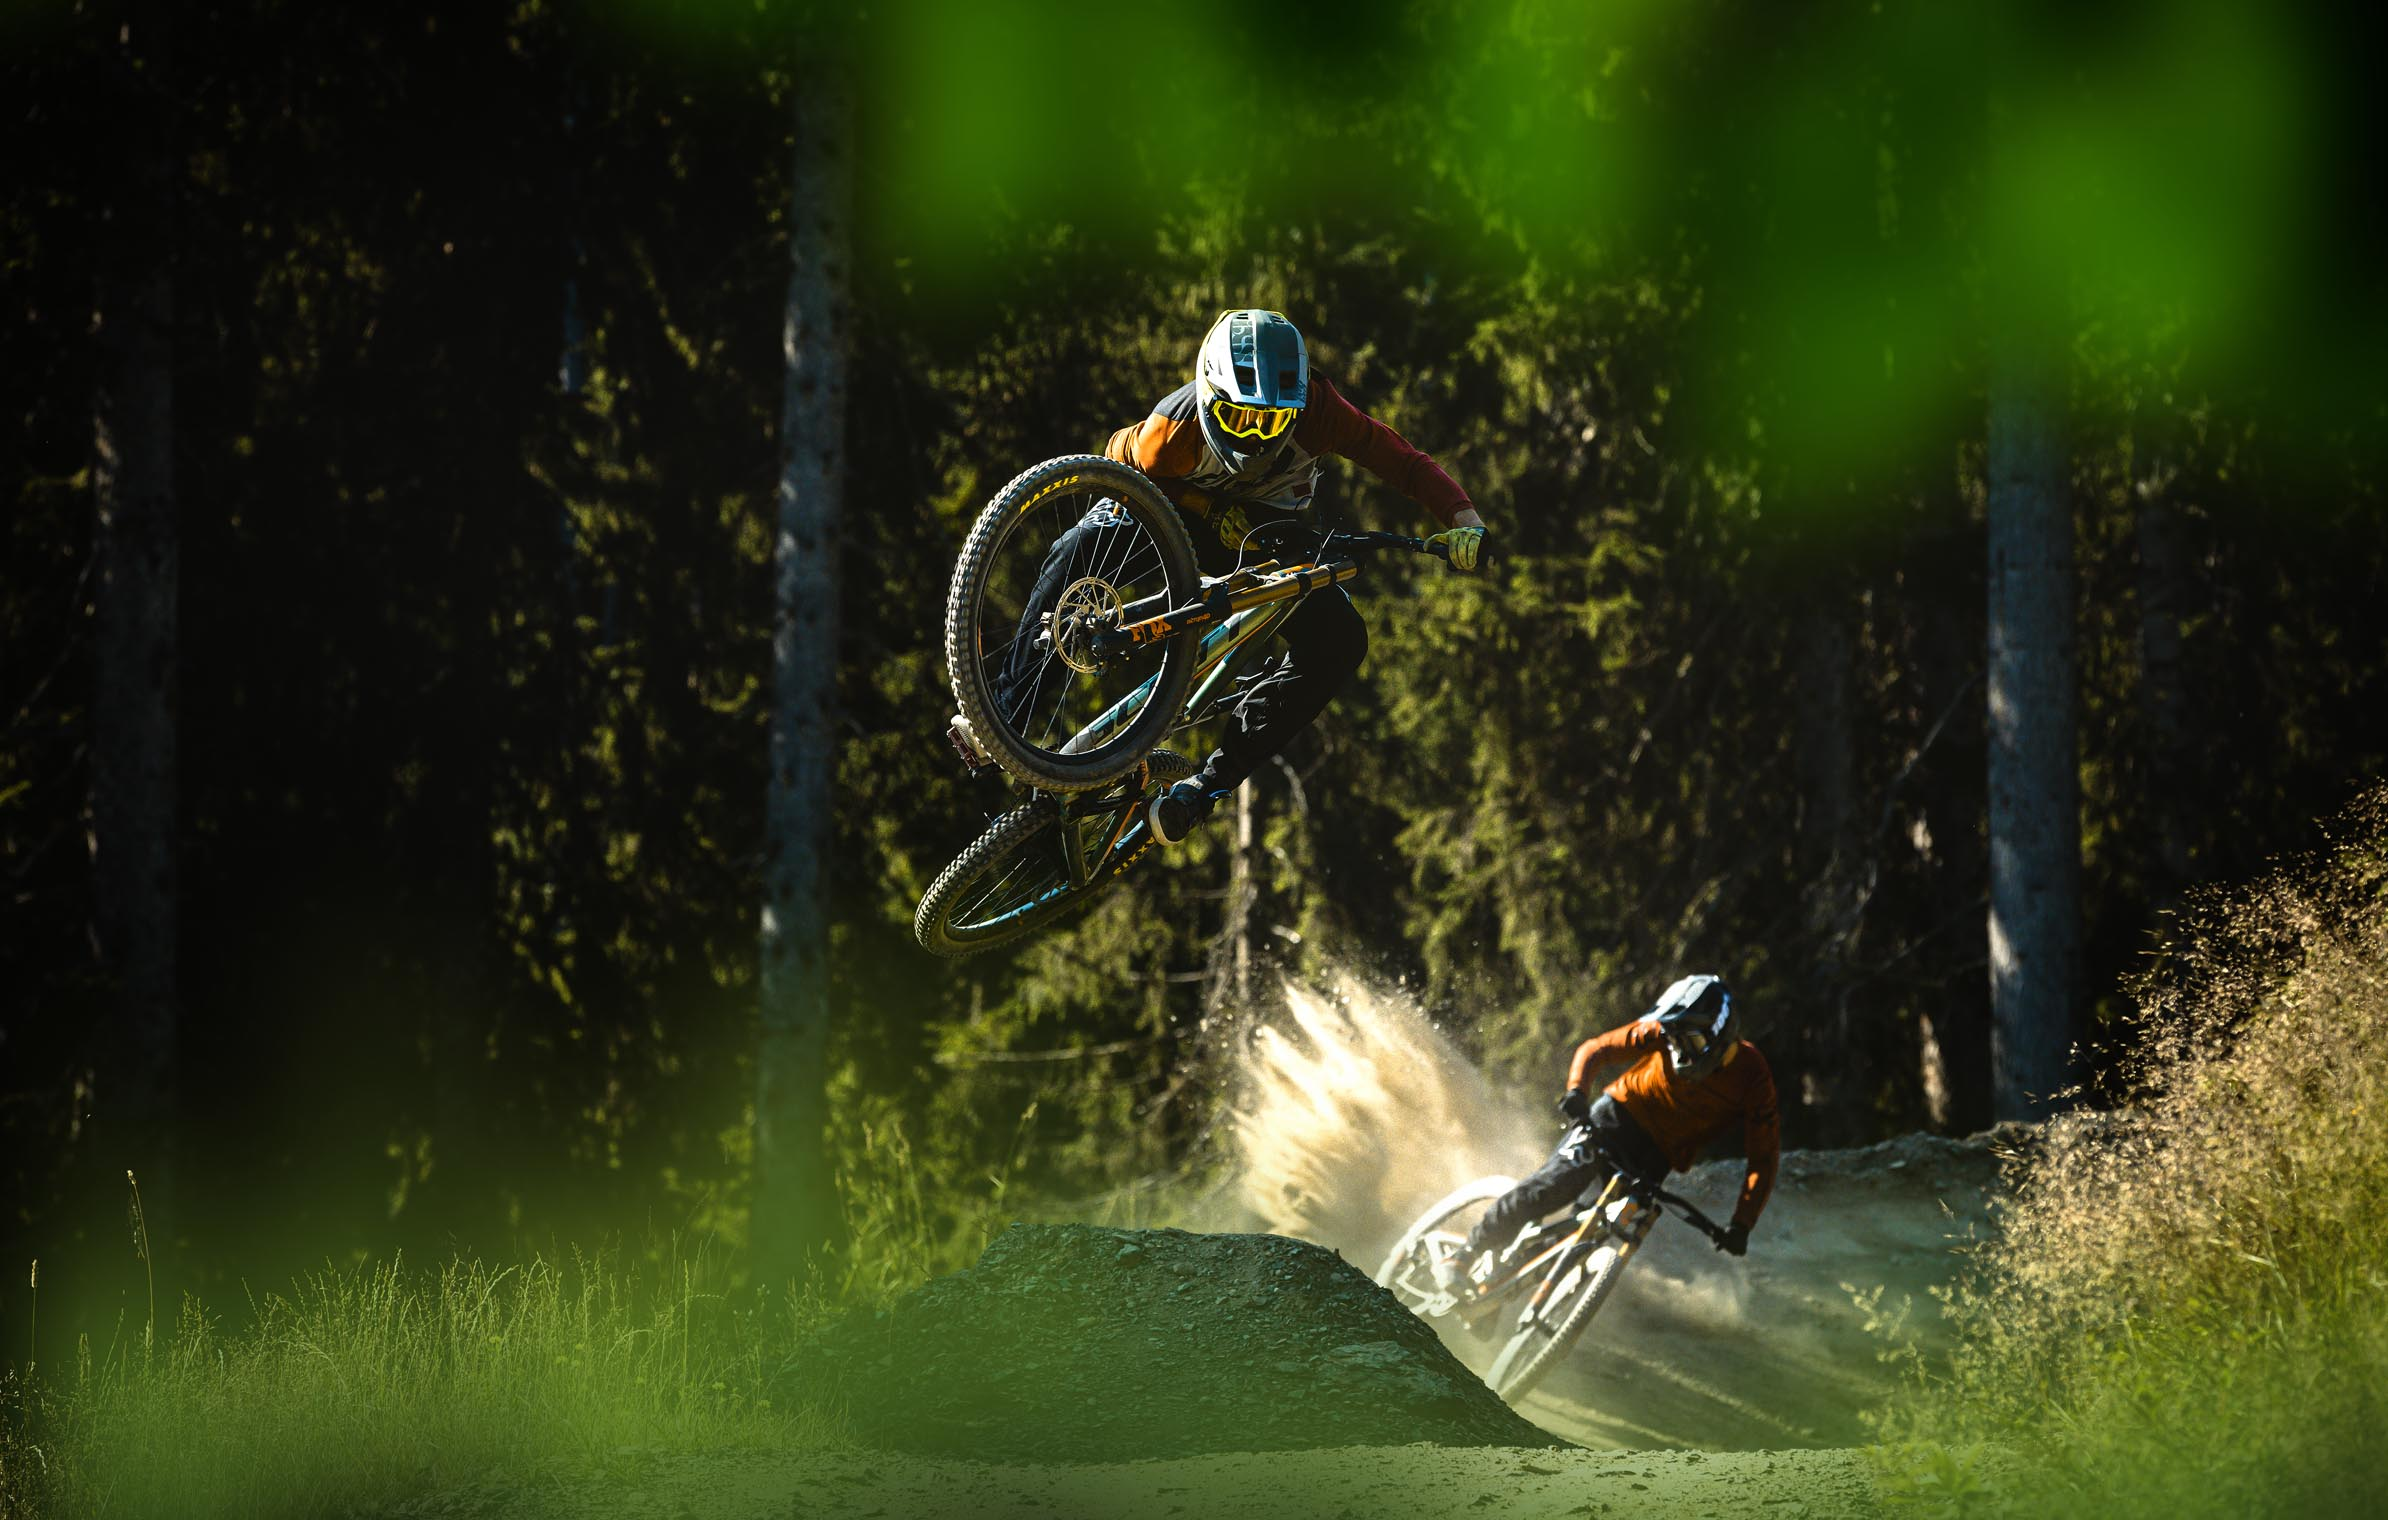 _quer_tabletop_spray_leogang_bikepark_epic_downhill_freeride